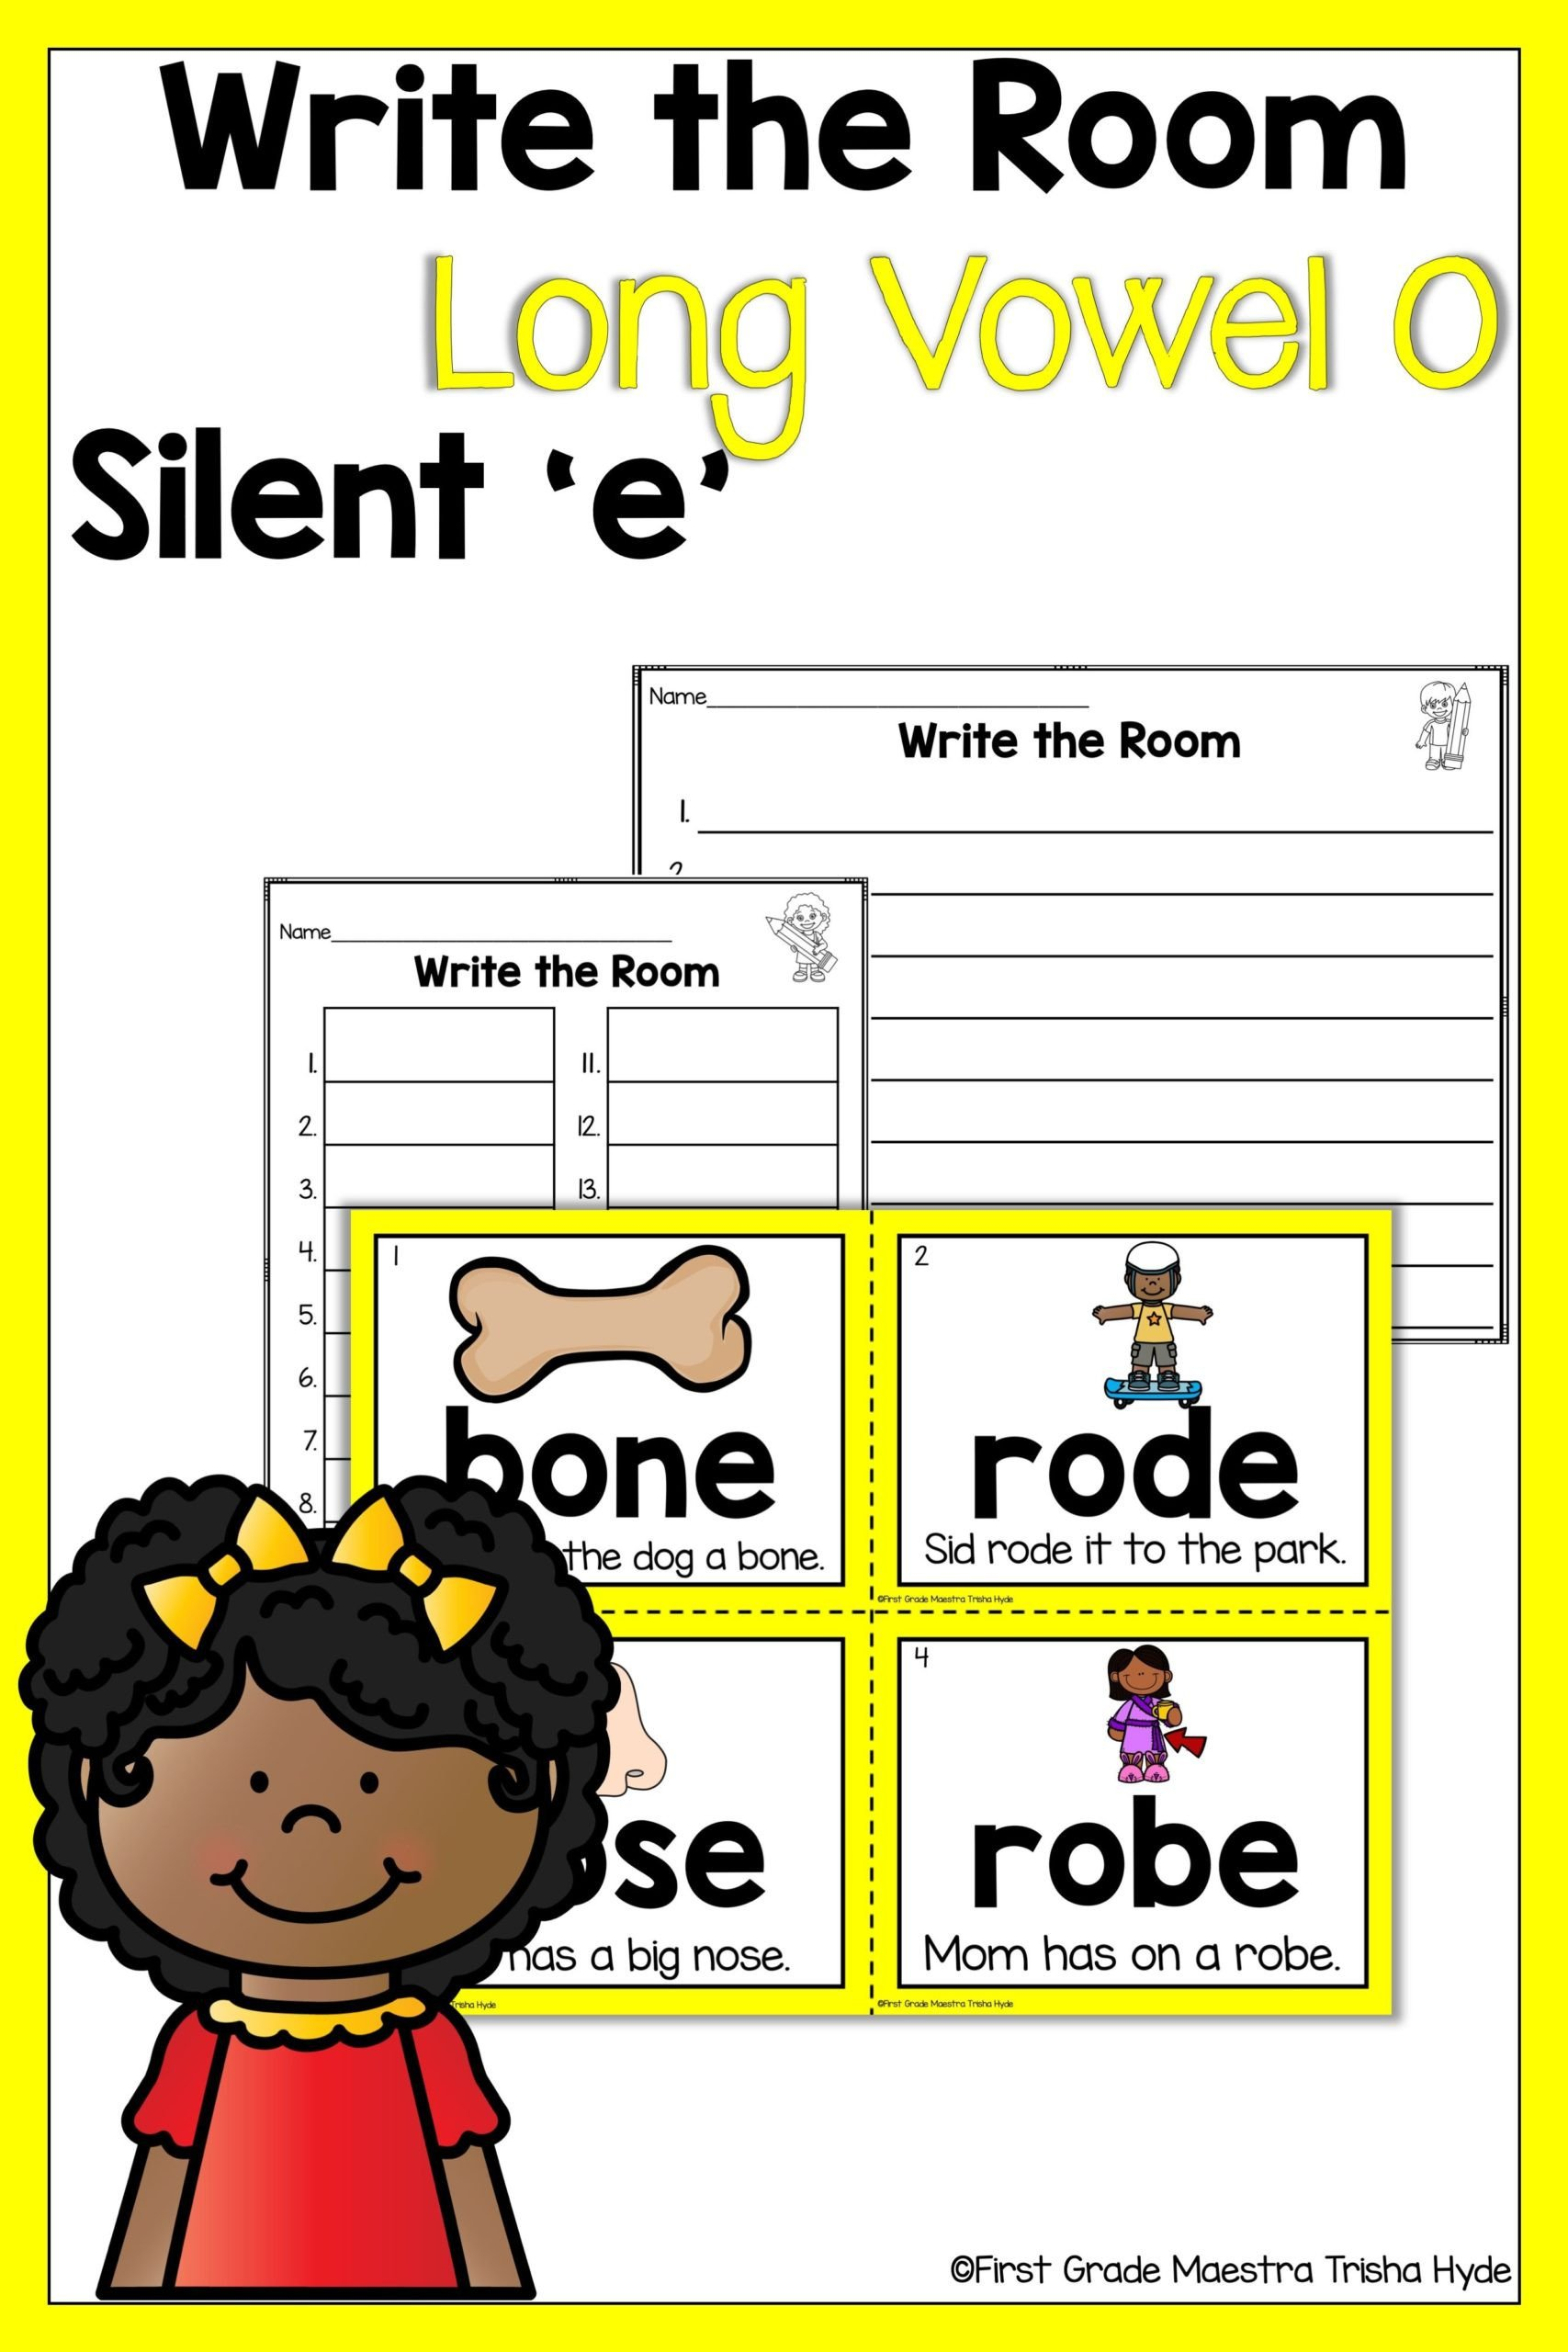 Free Silent E Worksheets Write the Room Vowel Silent with Phonics Worksheets